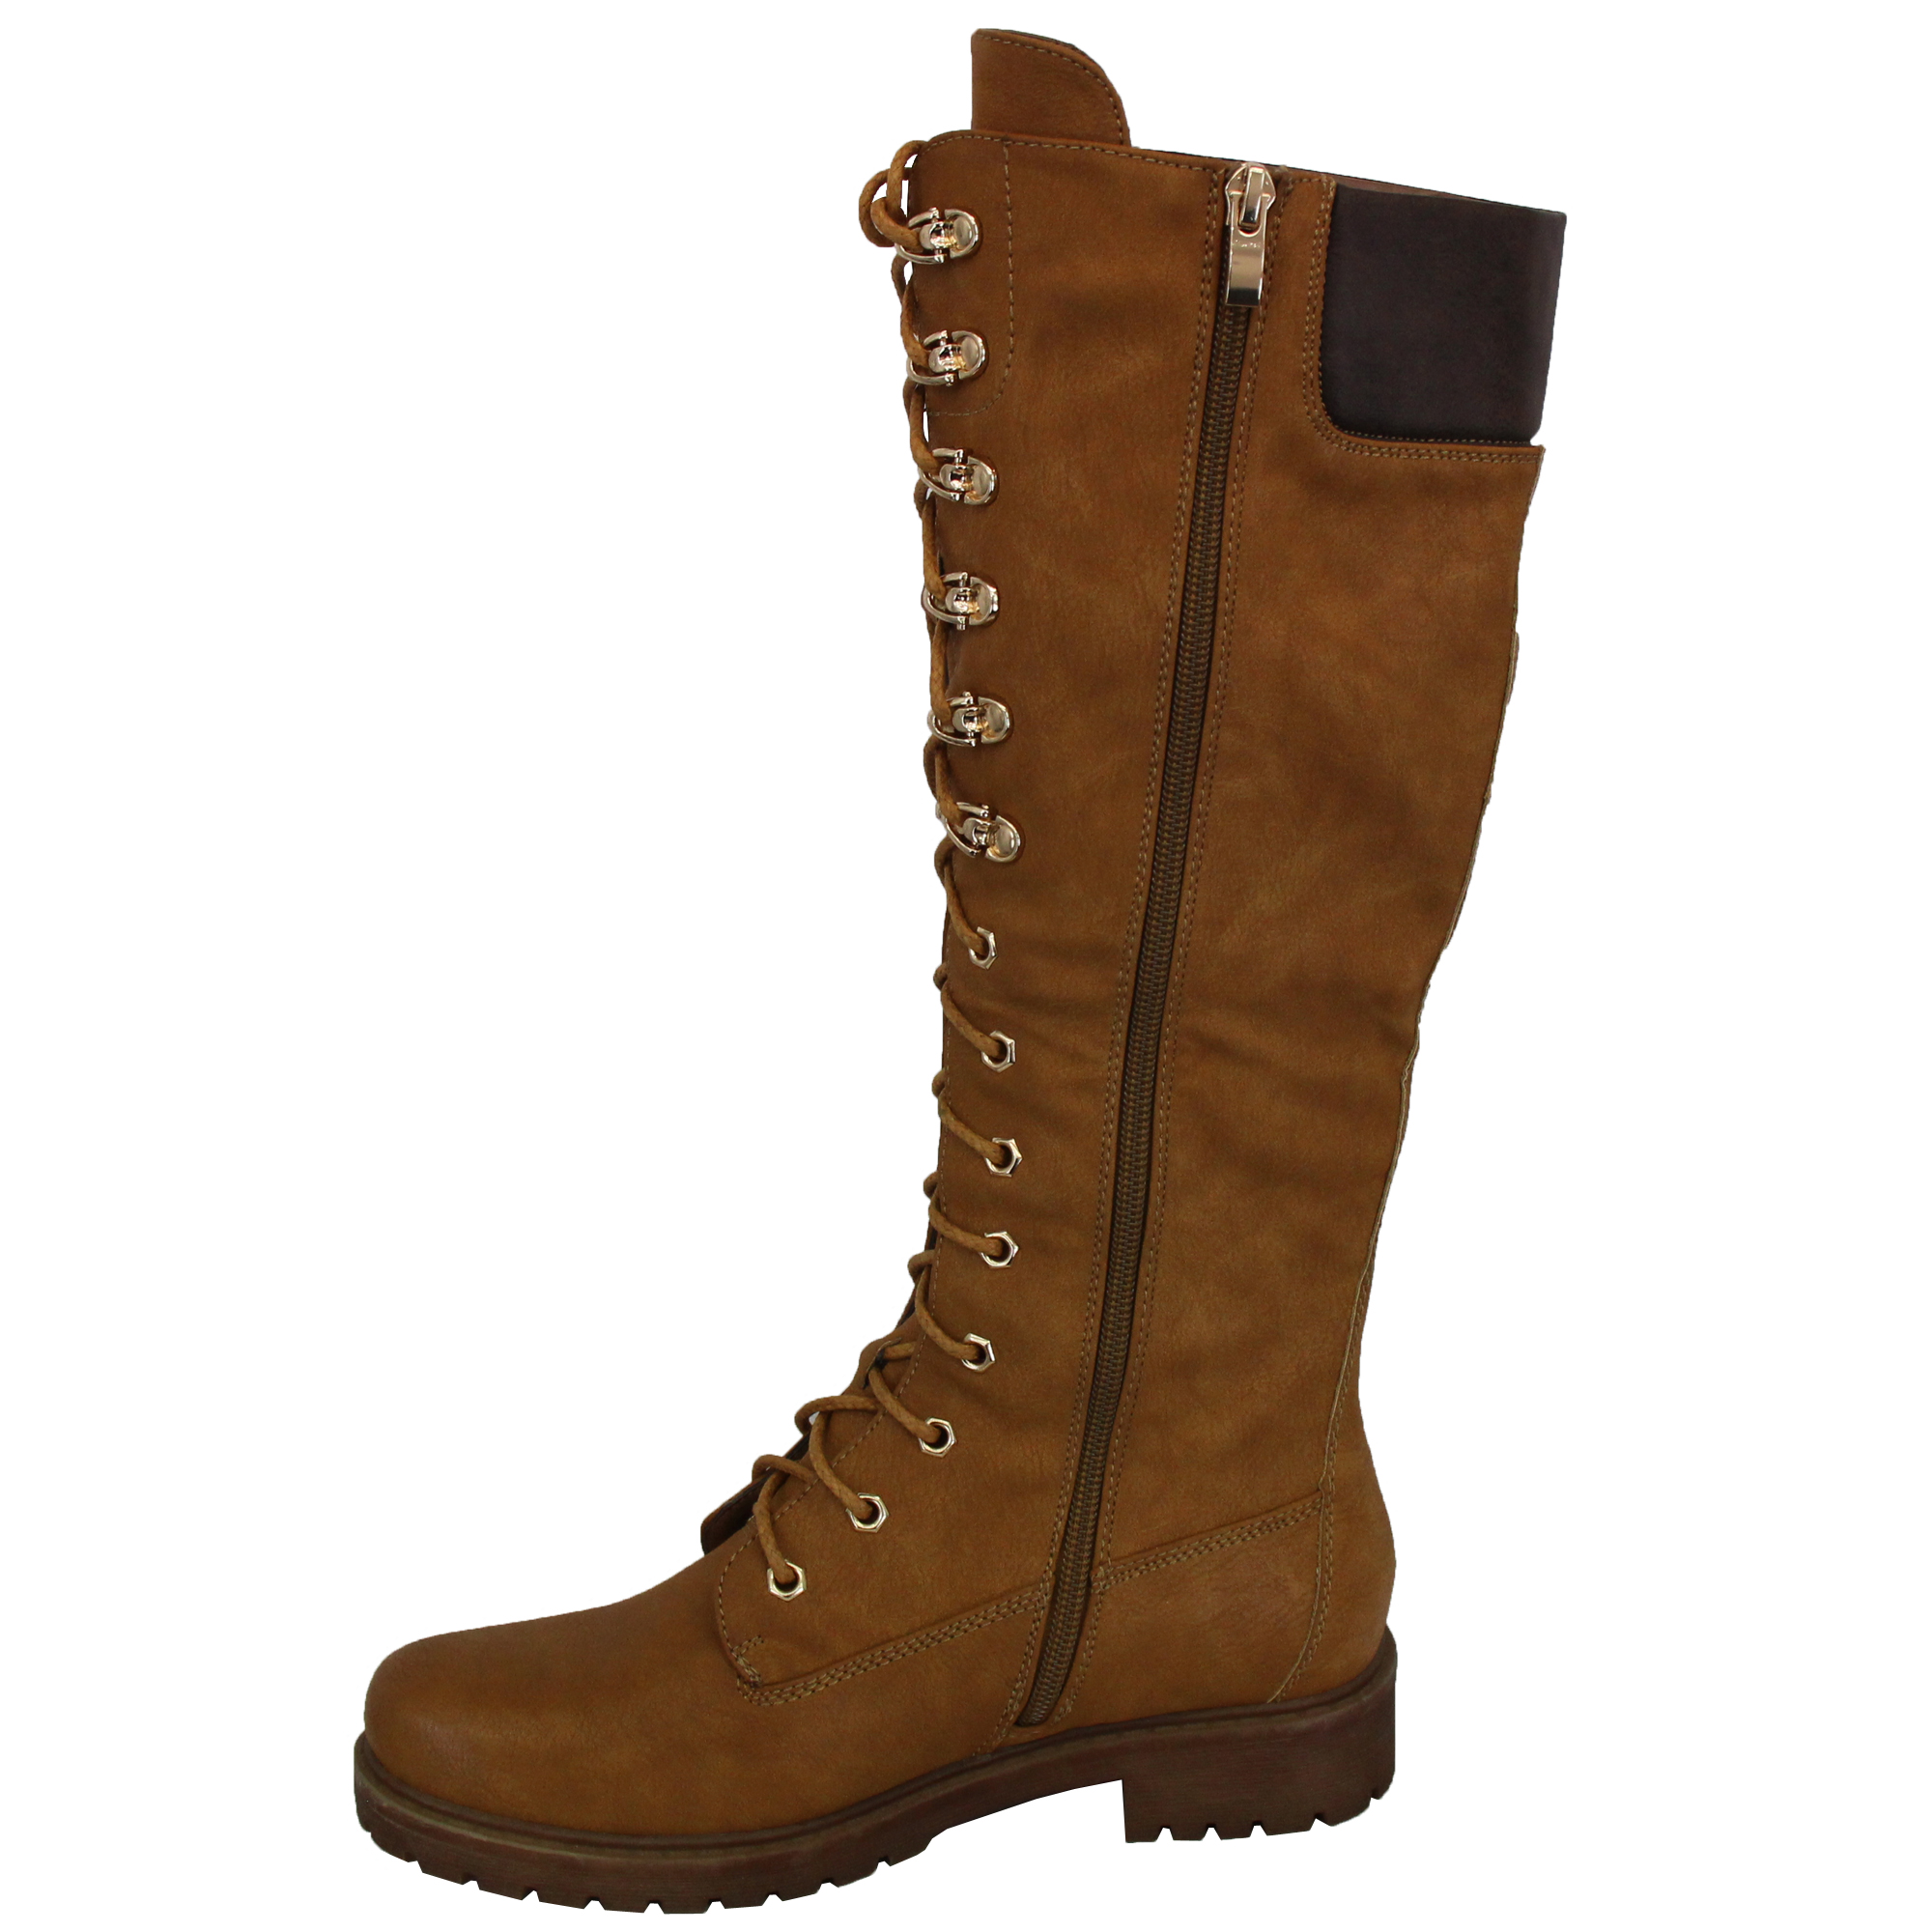 Ladies Knee Calf Length Boots Womens Lace Up Side Zipped Military Shoes Winter